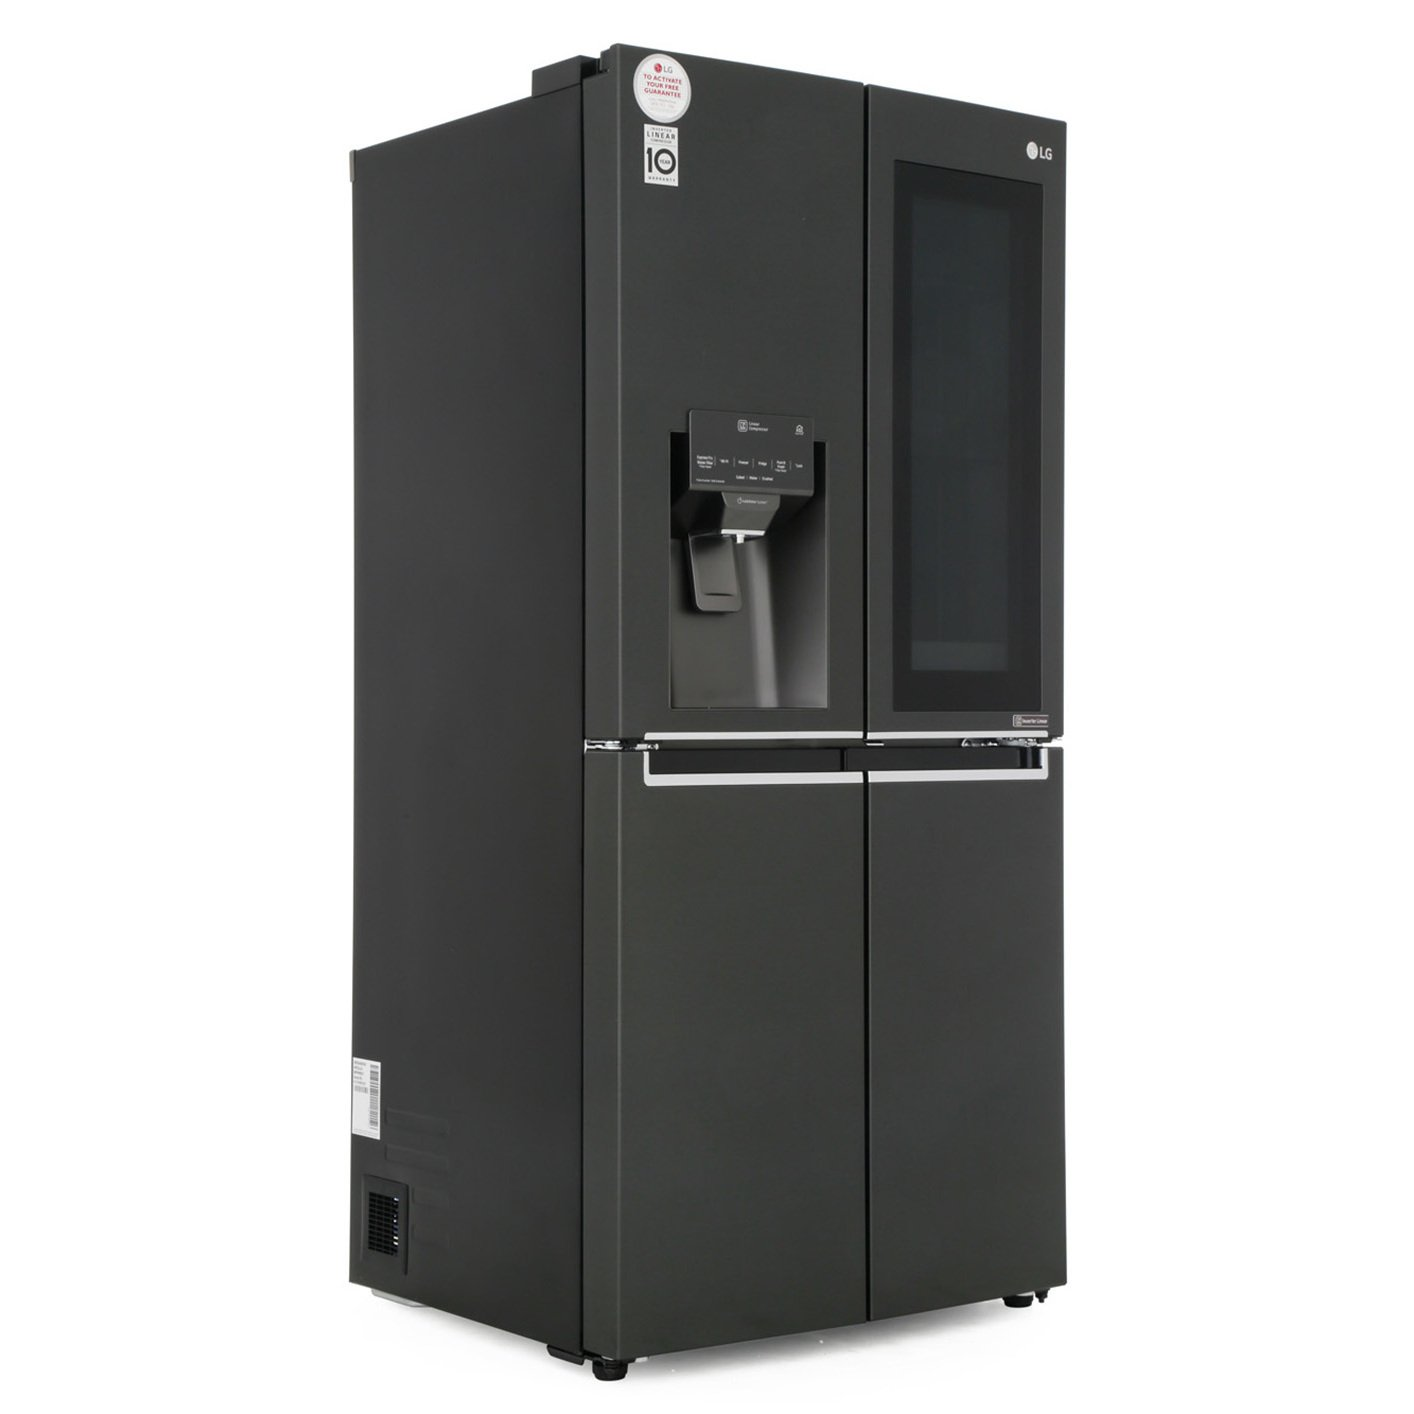 LG GMX844MCKV American Fridge Freezer